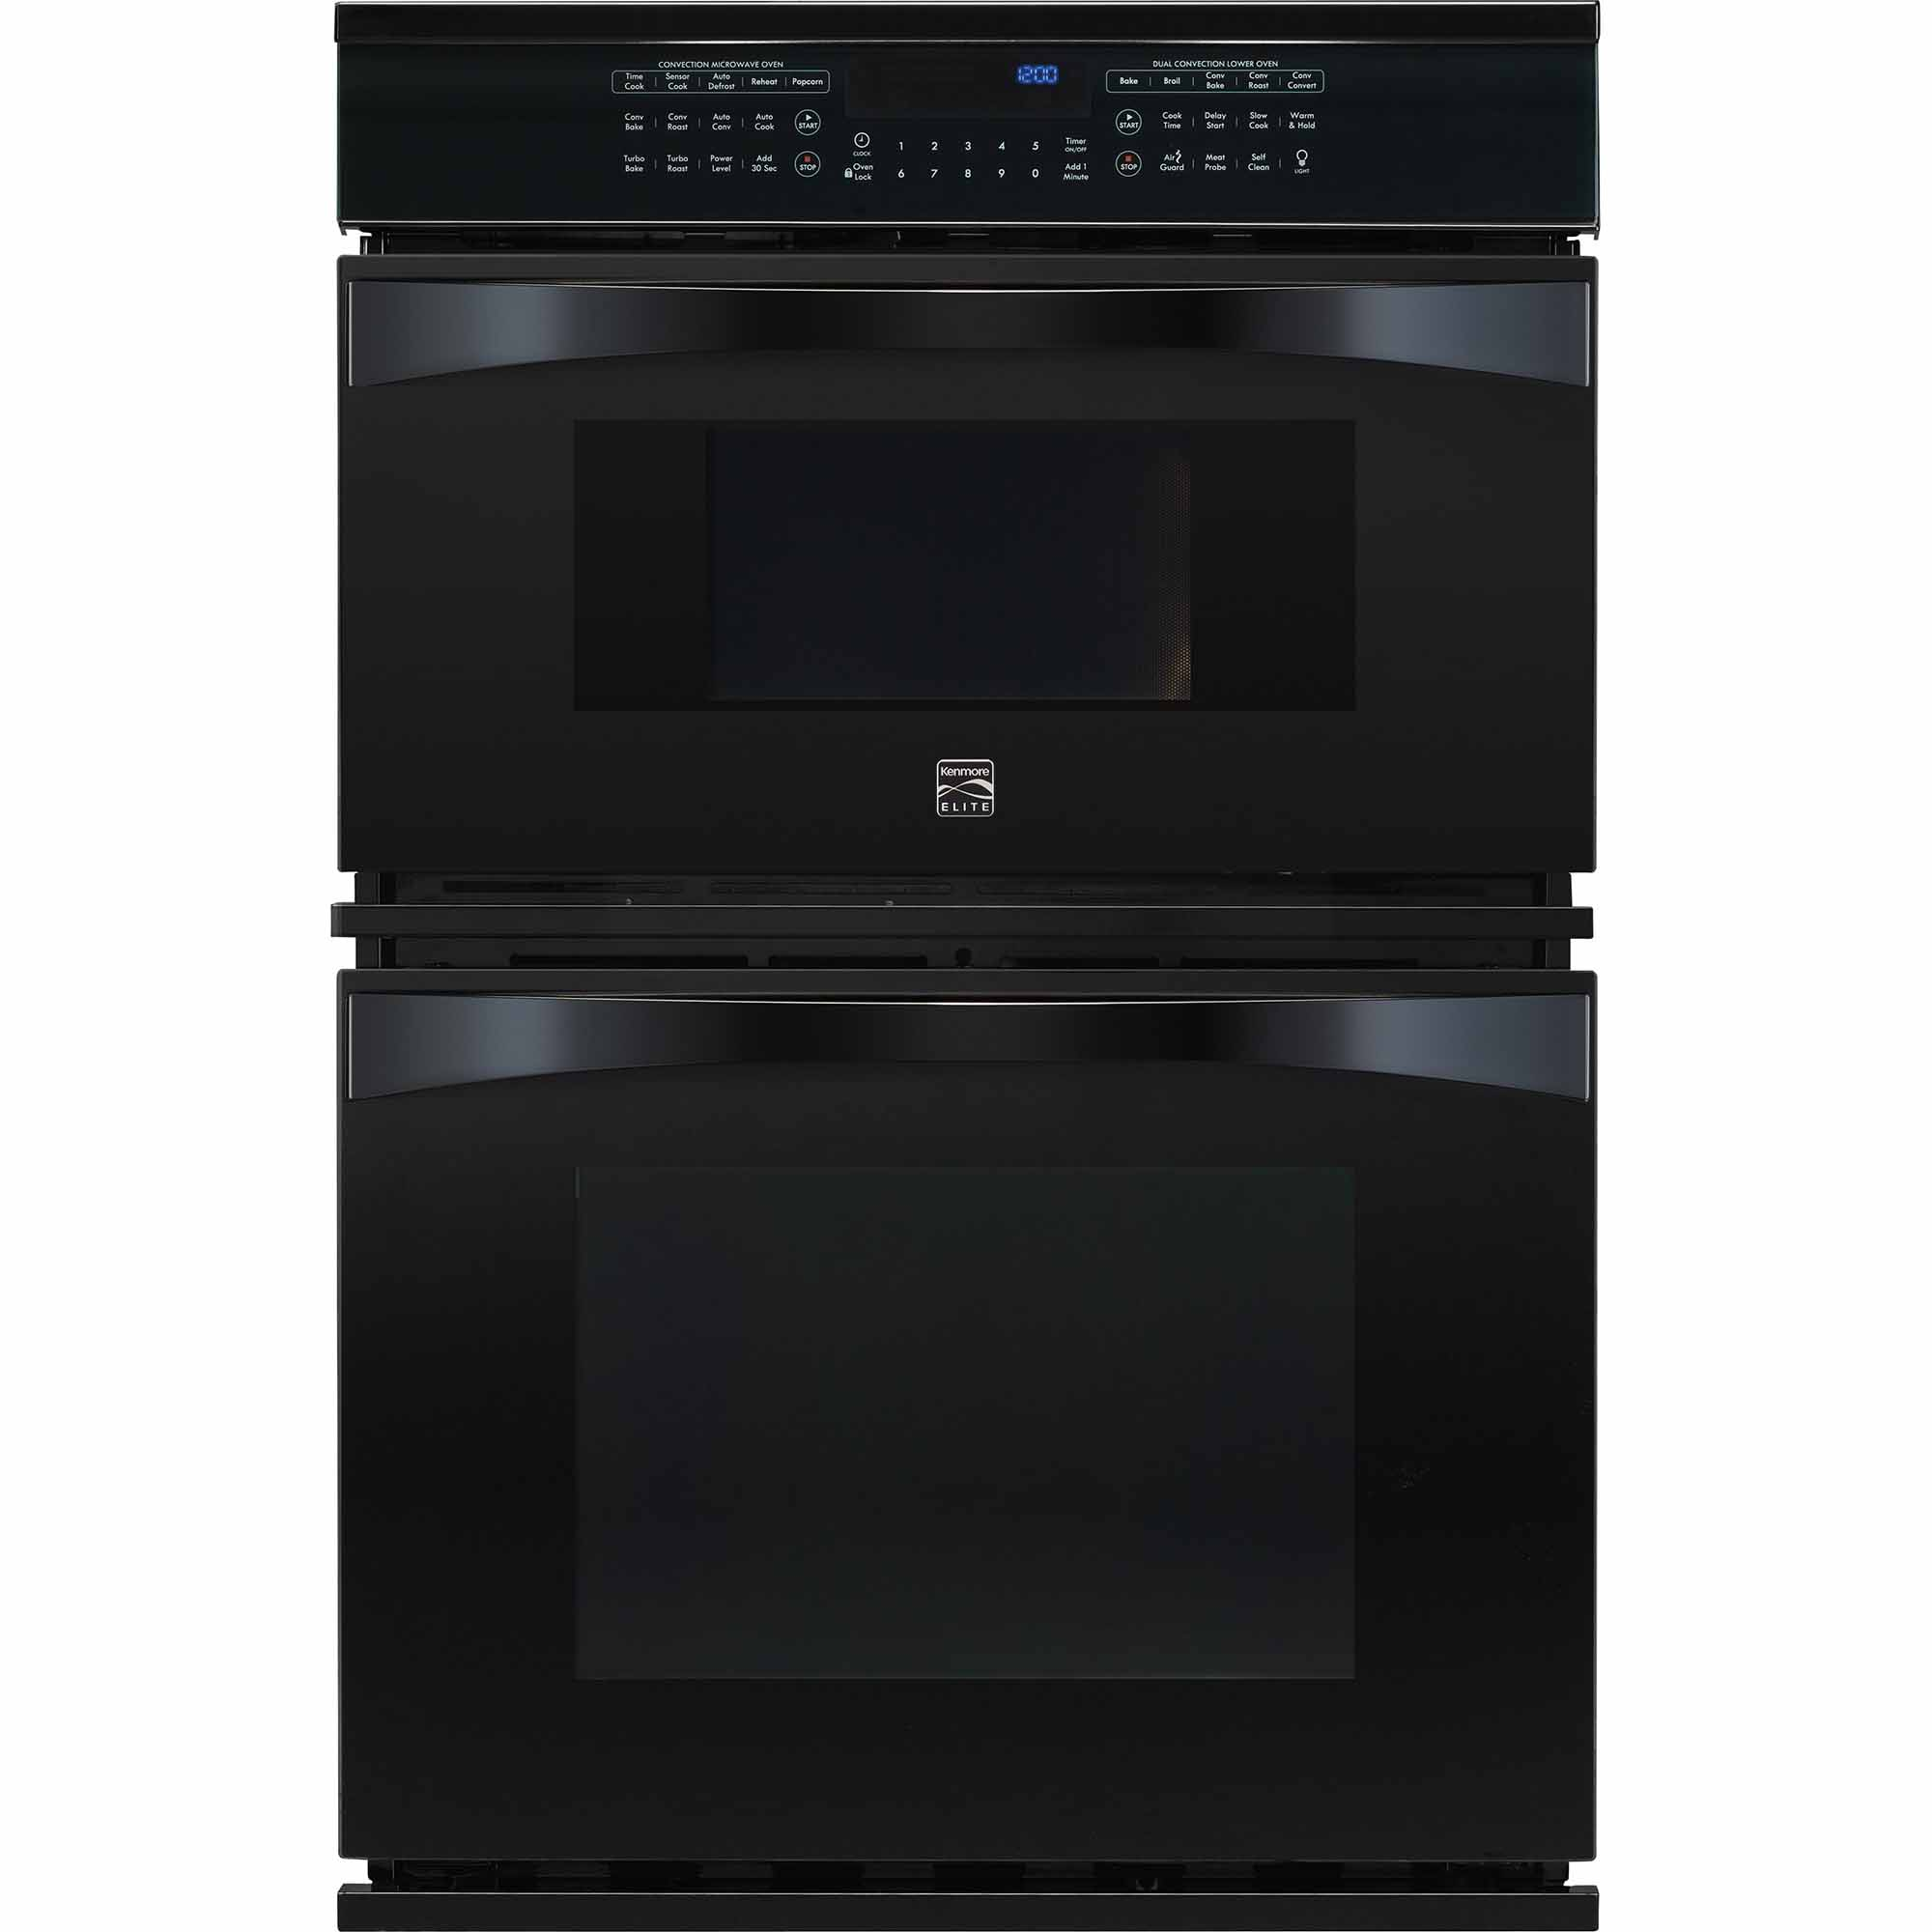 Kenmore Elite 49119 30 Electric Combination Oven - Black